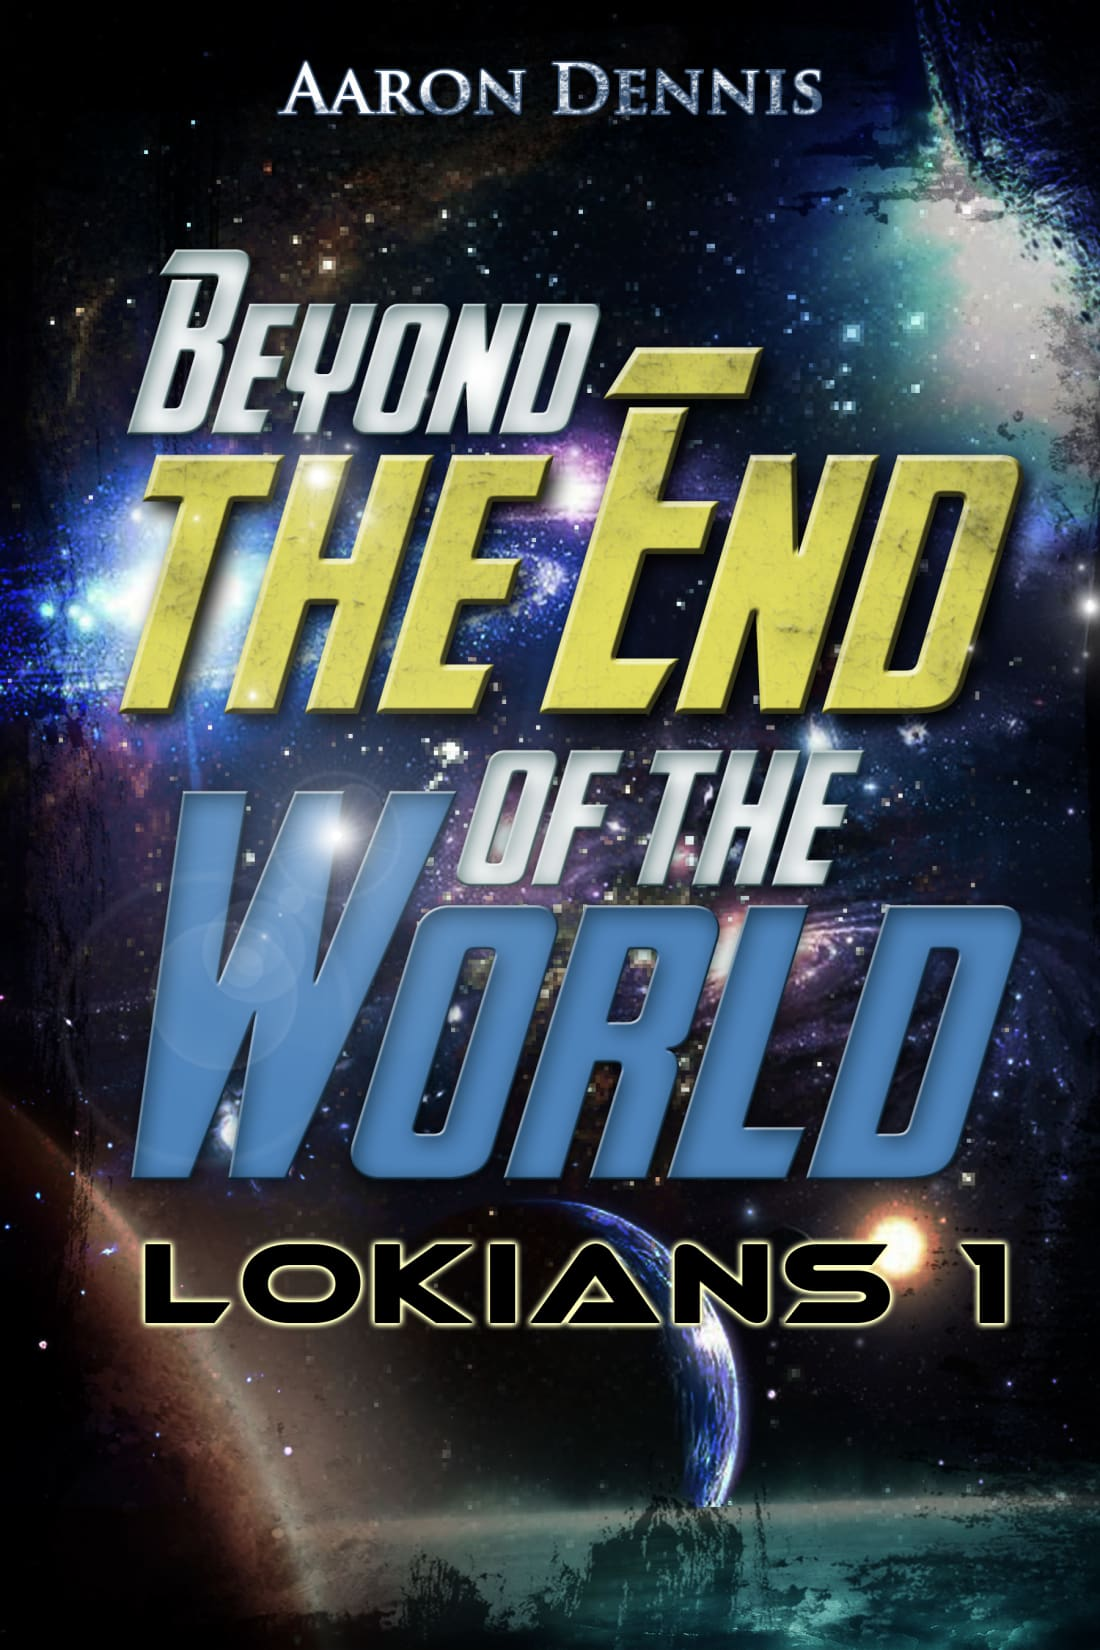 Part 14 of Beyond the End of the World, Lokians 1